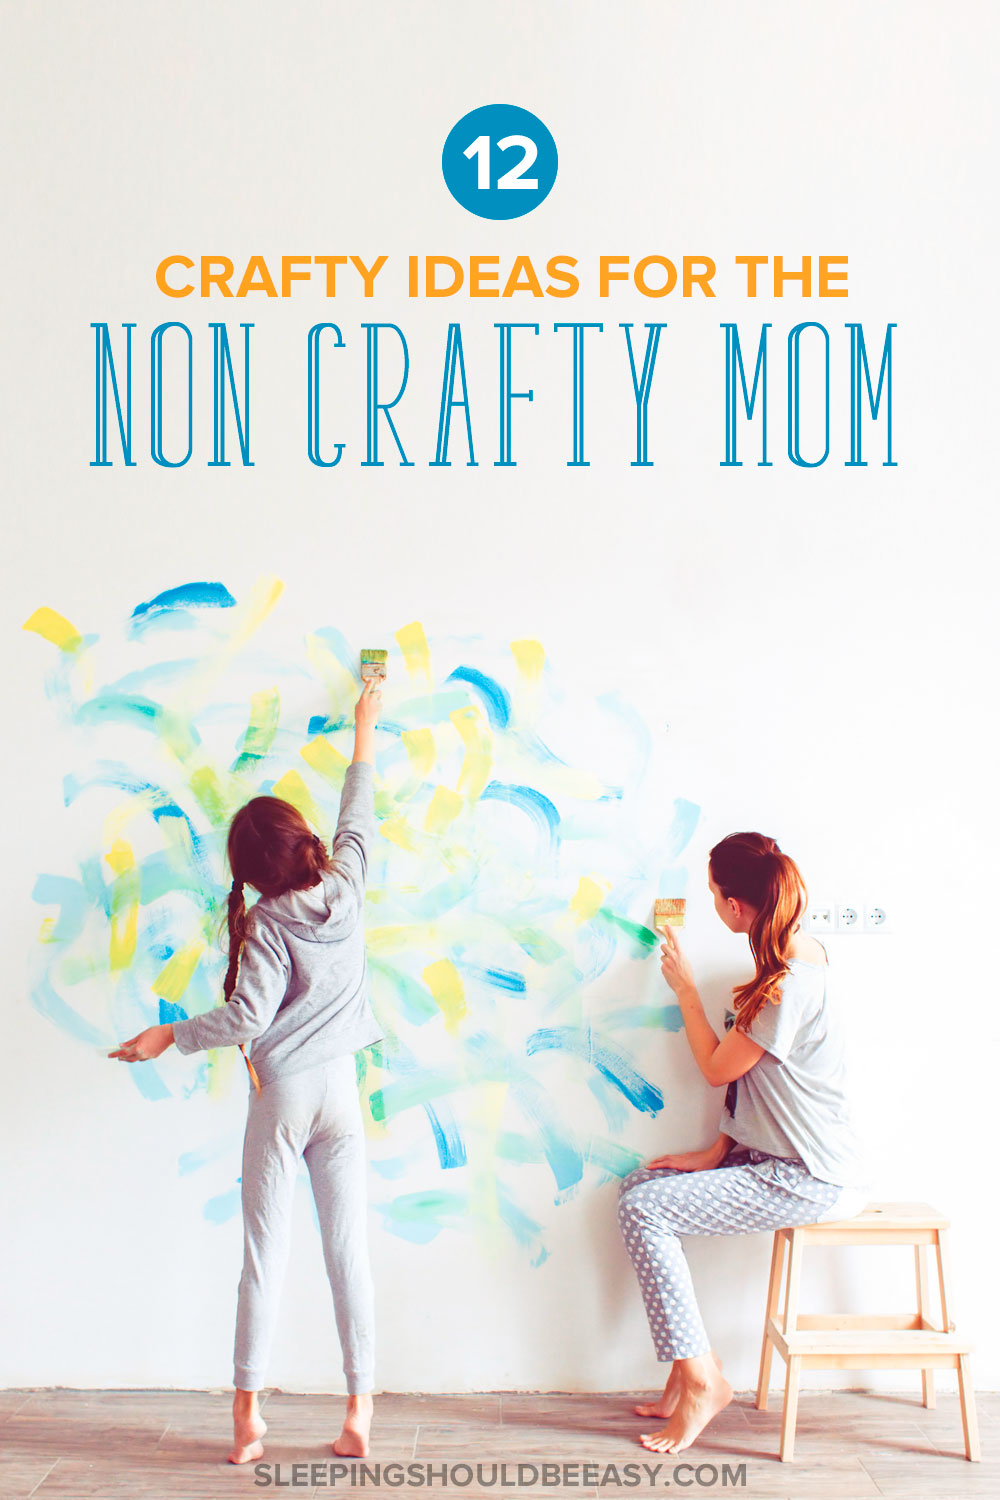 You want your kids to do fun crafts, but you want simple projects using regular items. Don't worry: here are 12 crafty ideas for the non crafty mom.